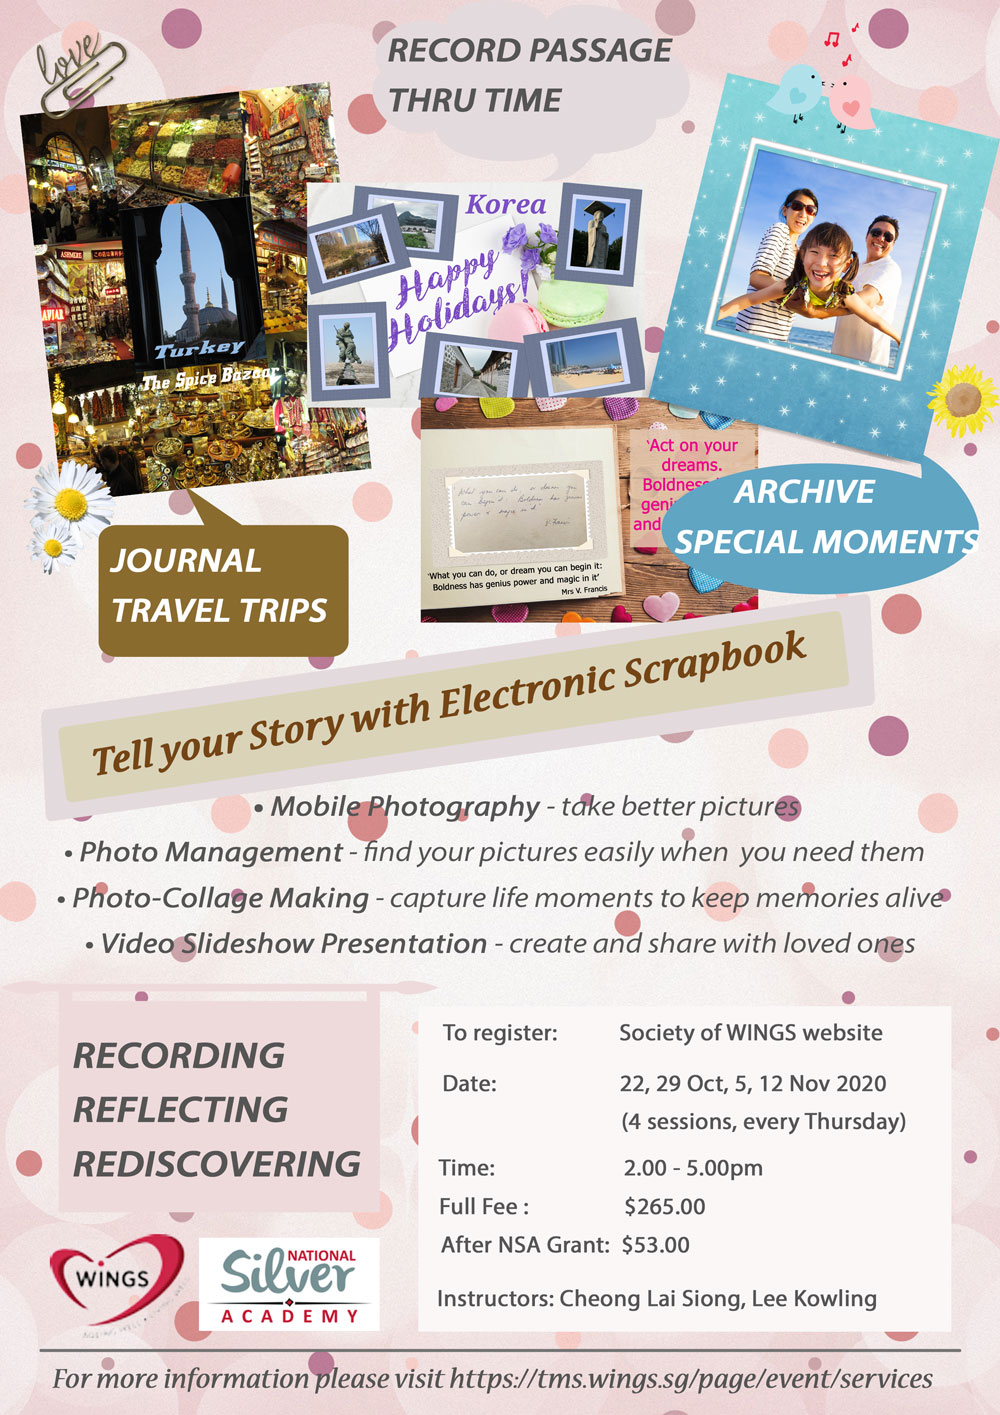 Society of WINGS Tell Y our Story with Electronic Scrapbook